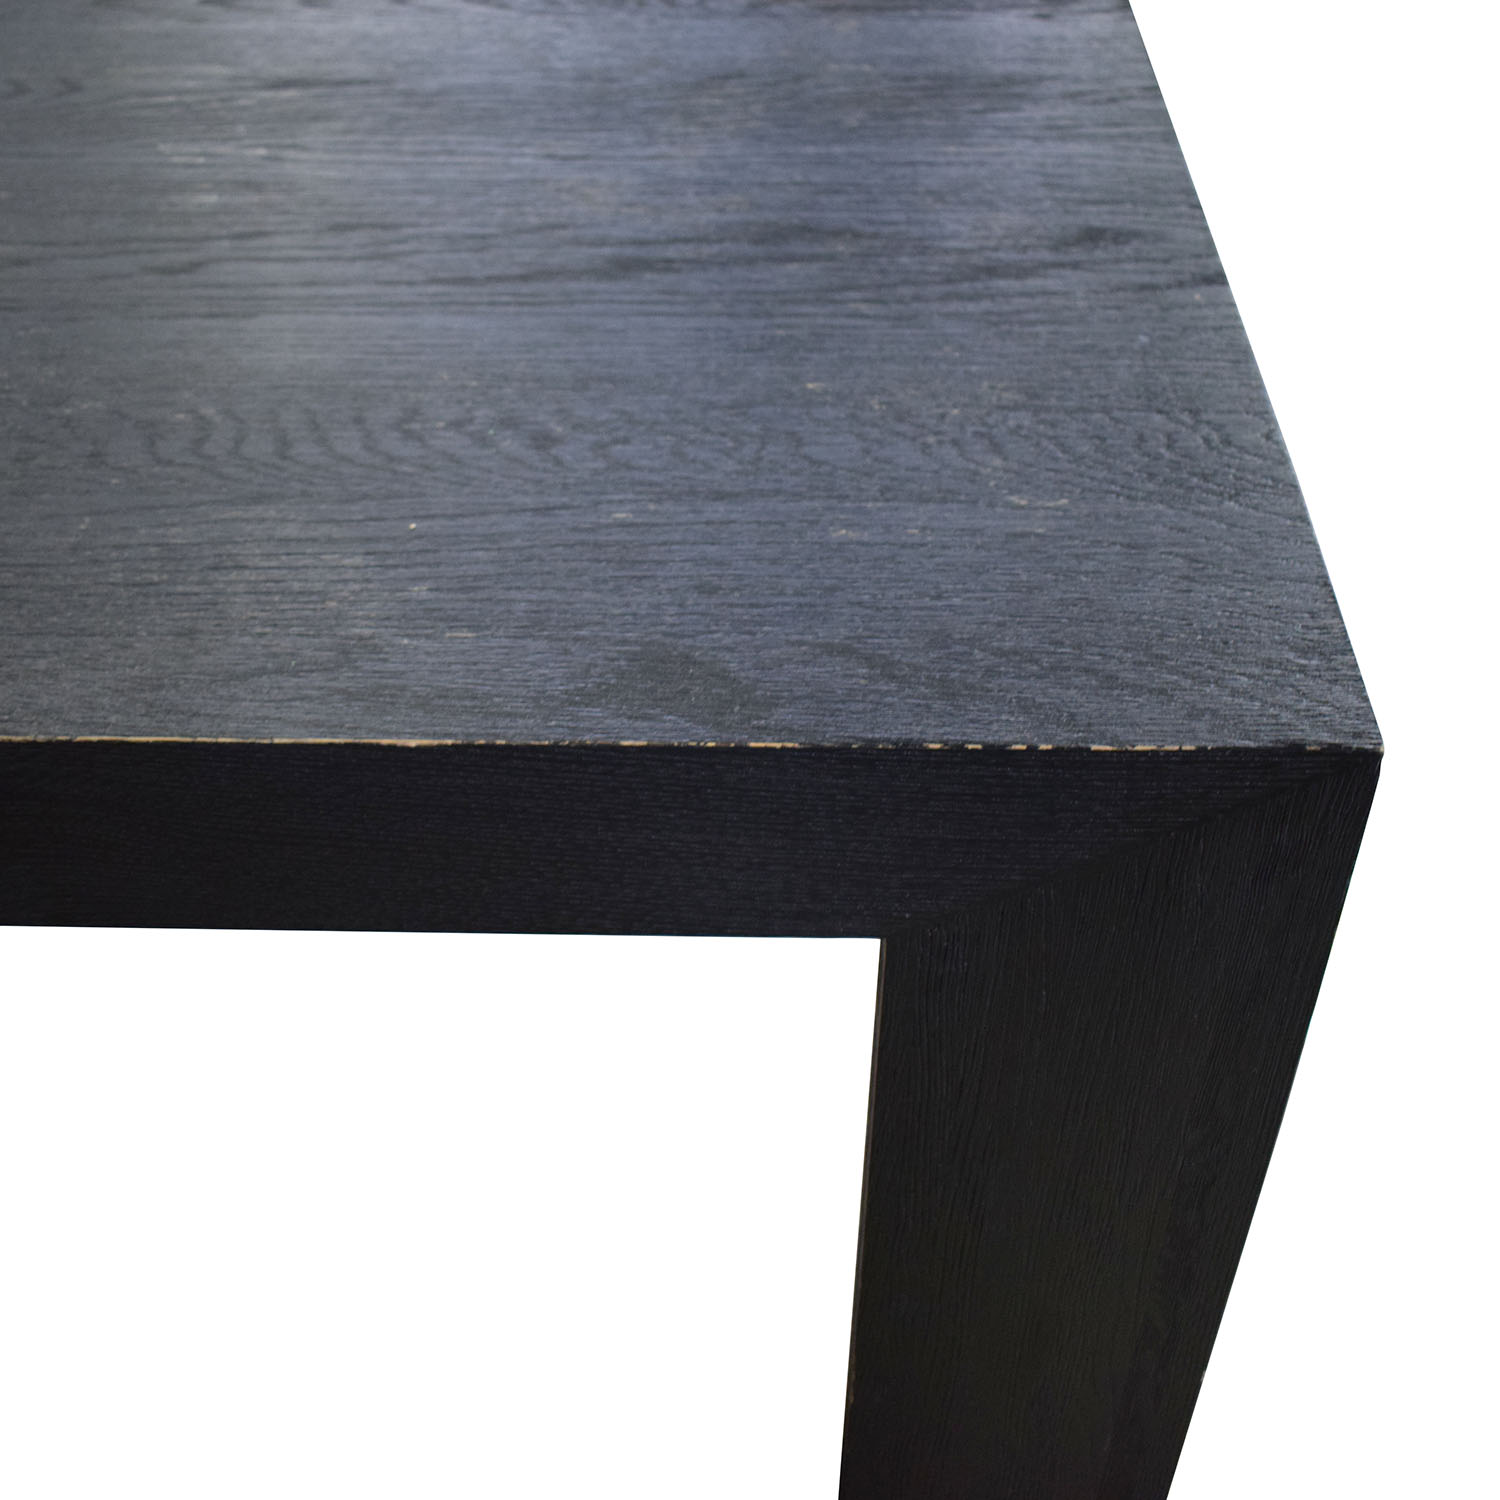 buy Restoration Hardware Restoration Hardware Machinto Square Dining Table online